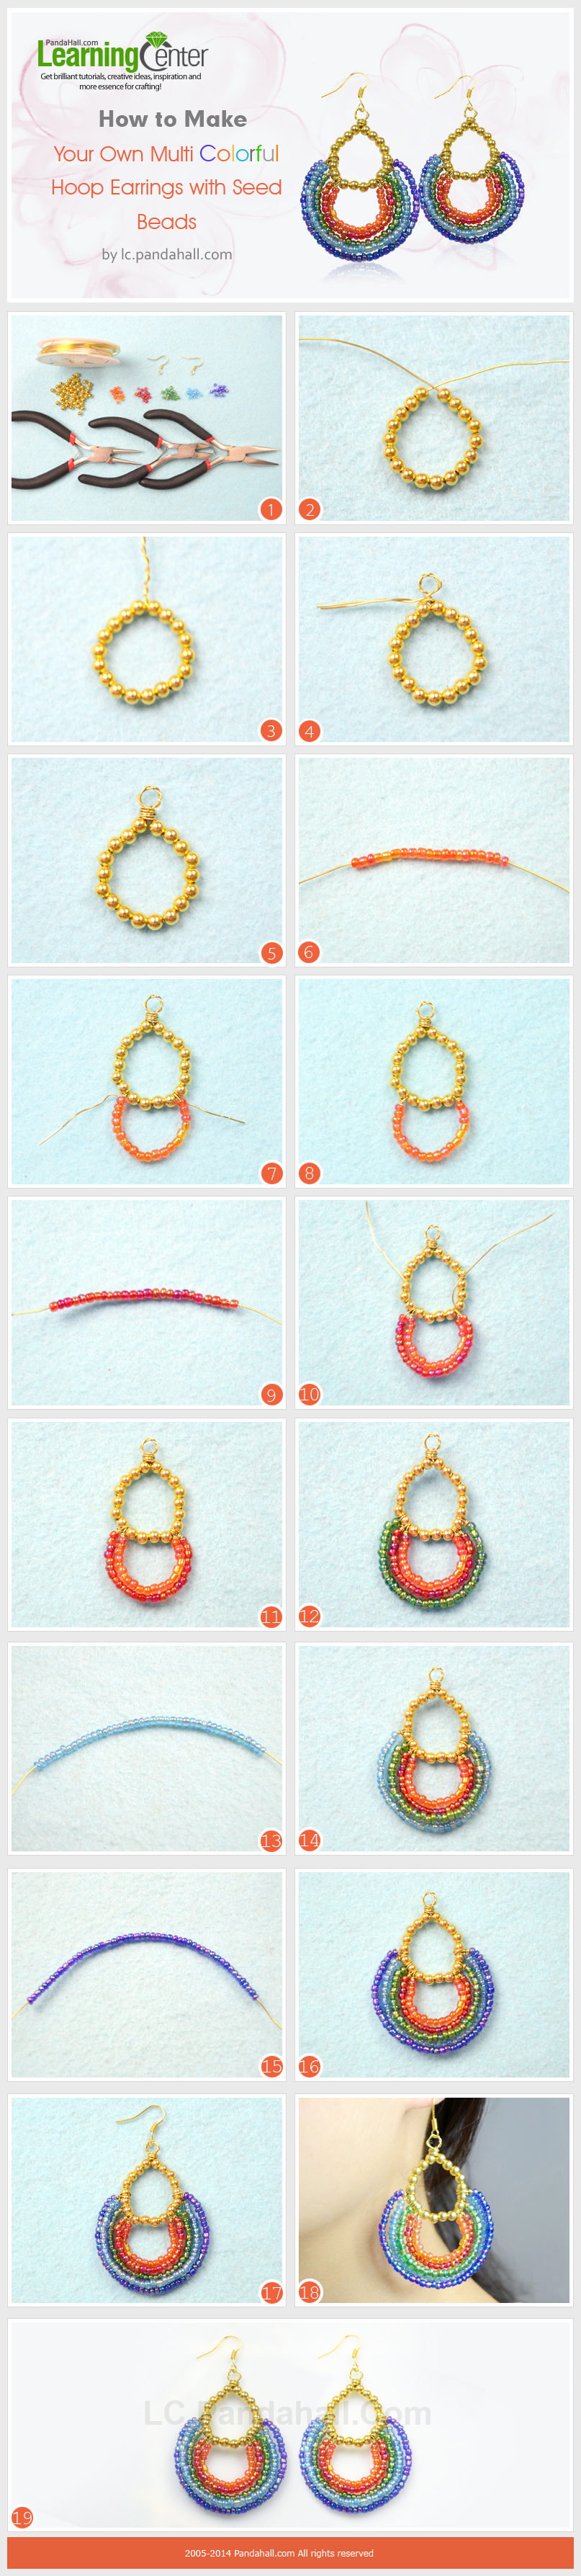 How to Make Your Own Multi Colorful Hoop Earrings with Seed Beads